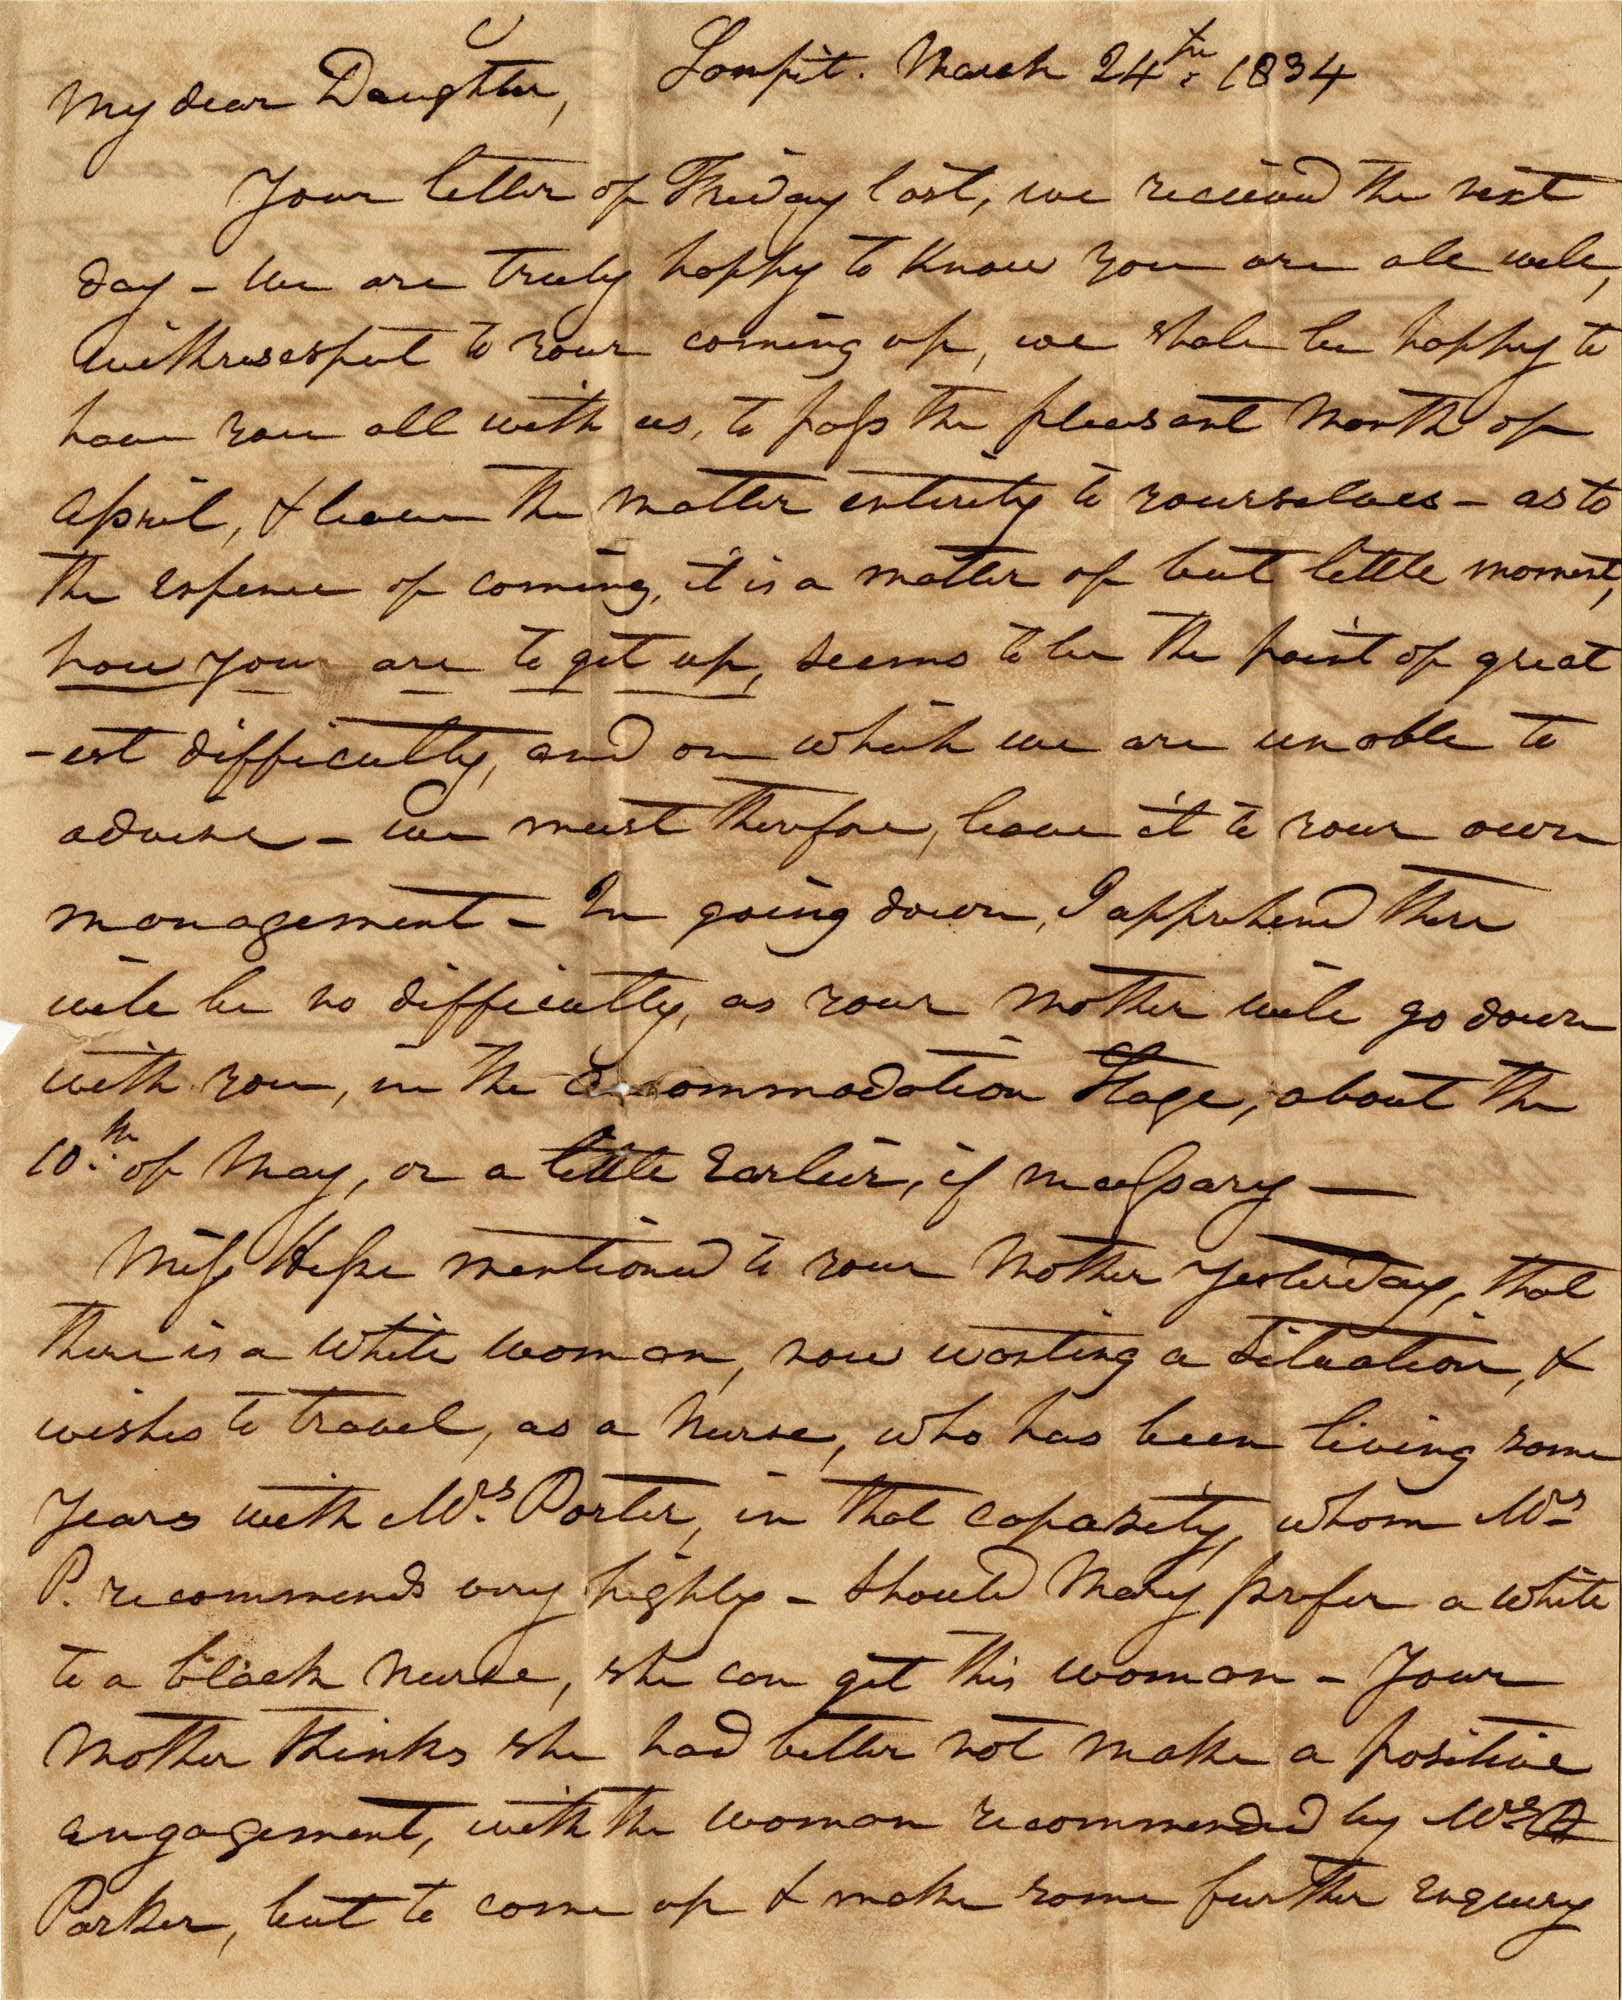 015. Willis Wilkinson to Anna Wilkinson -- March 24, 1834